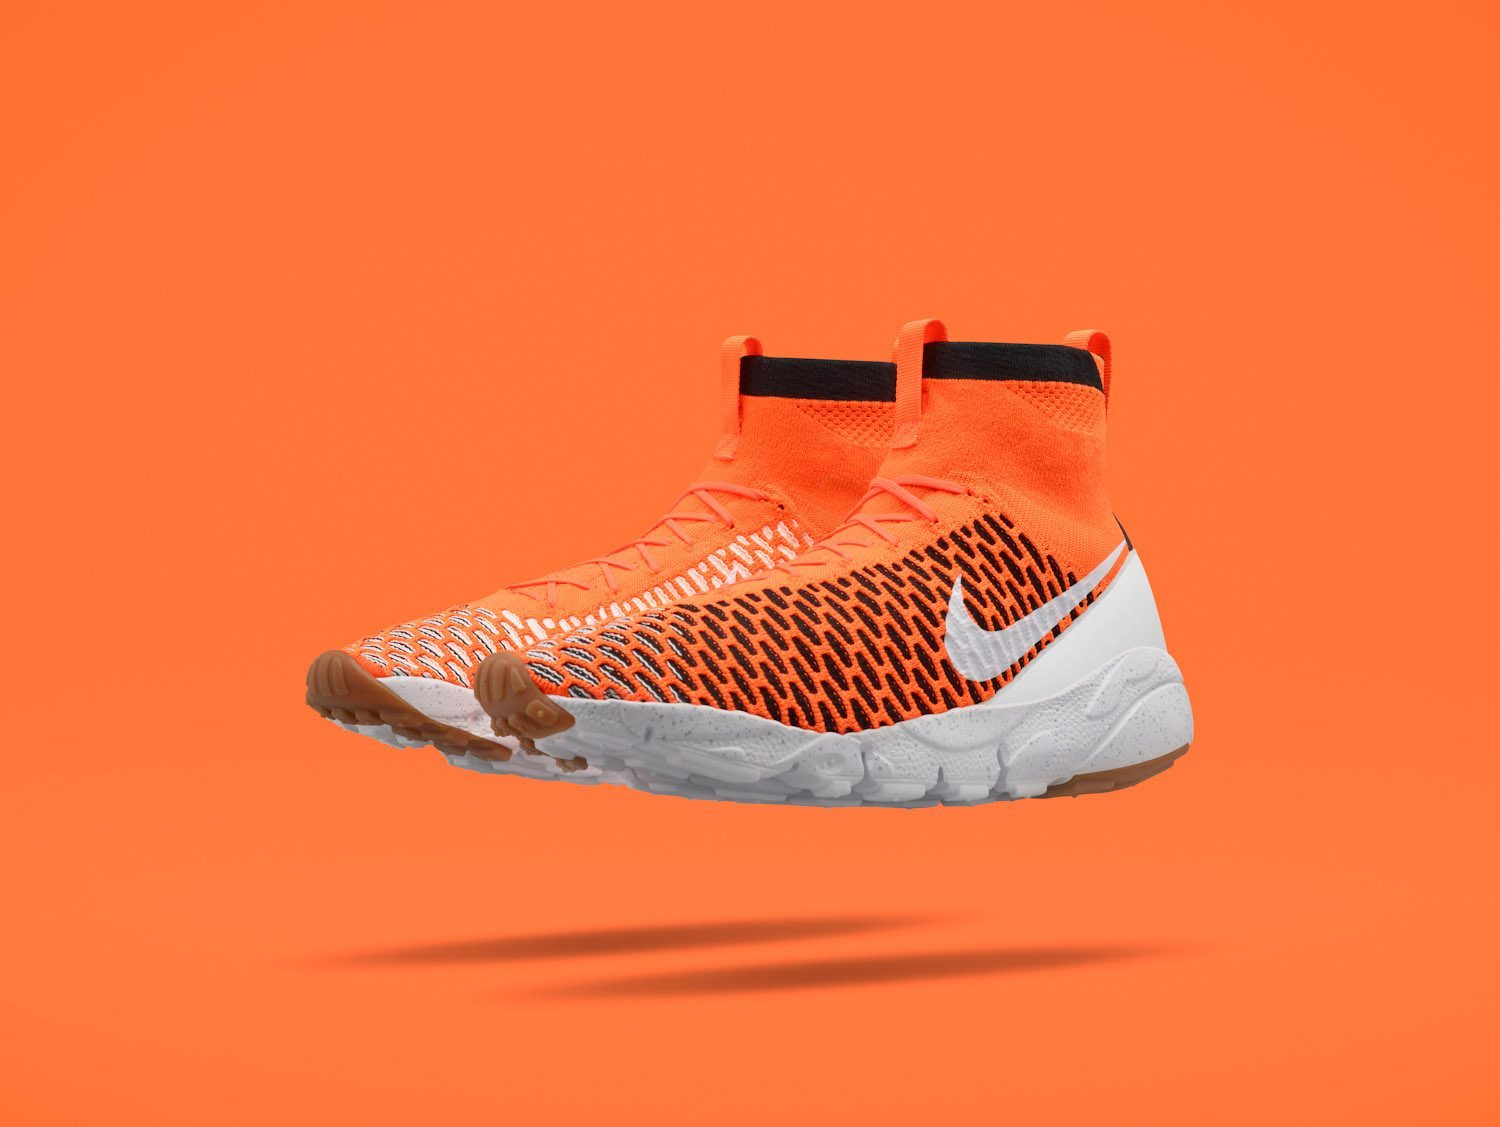 Nike Air Footscape Magista Tournament Pack 19